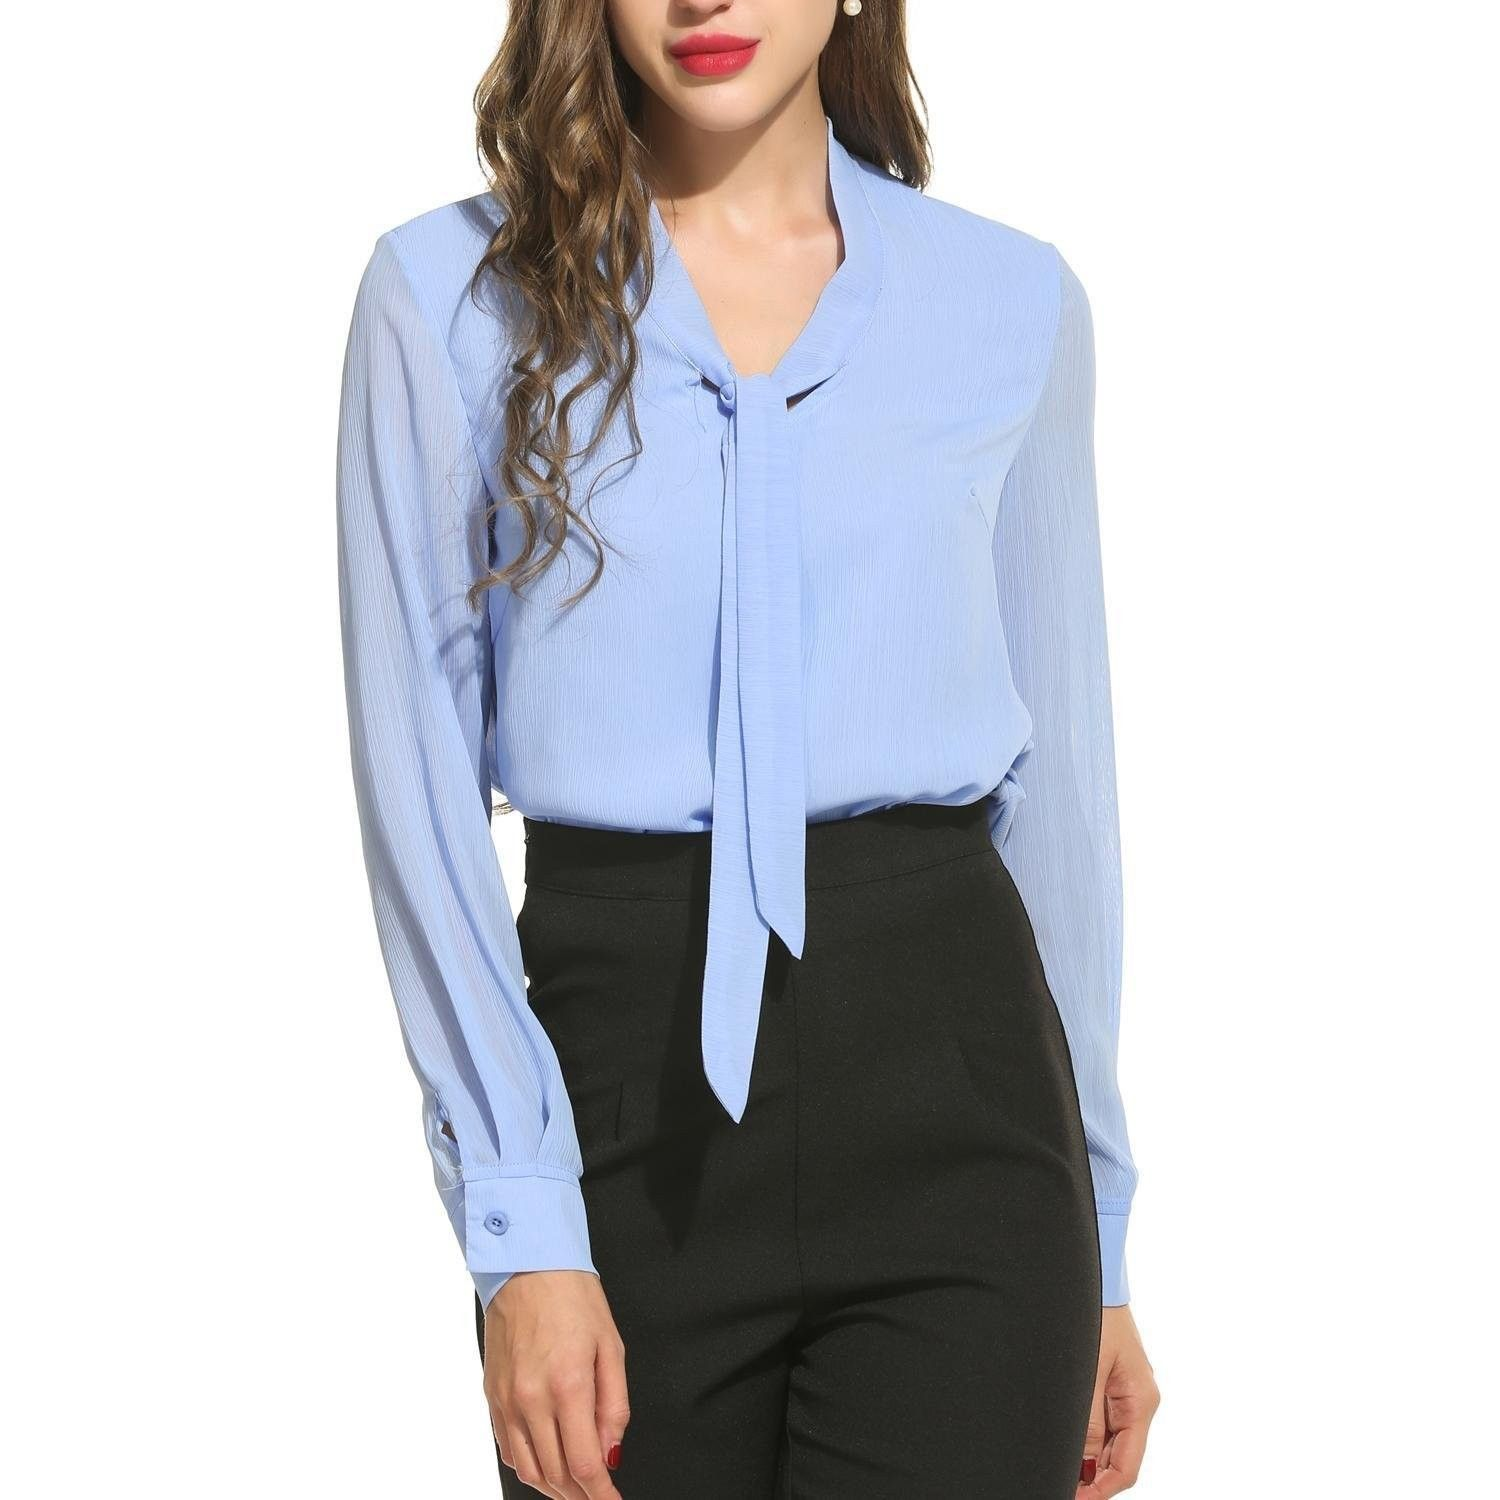 e3225064321a7a Women Chiffon Blouses Long Sleeve Solid Tie Bow Neck Casual Formal Shirt  Tops - Type1 Light